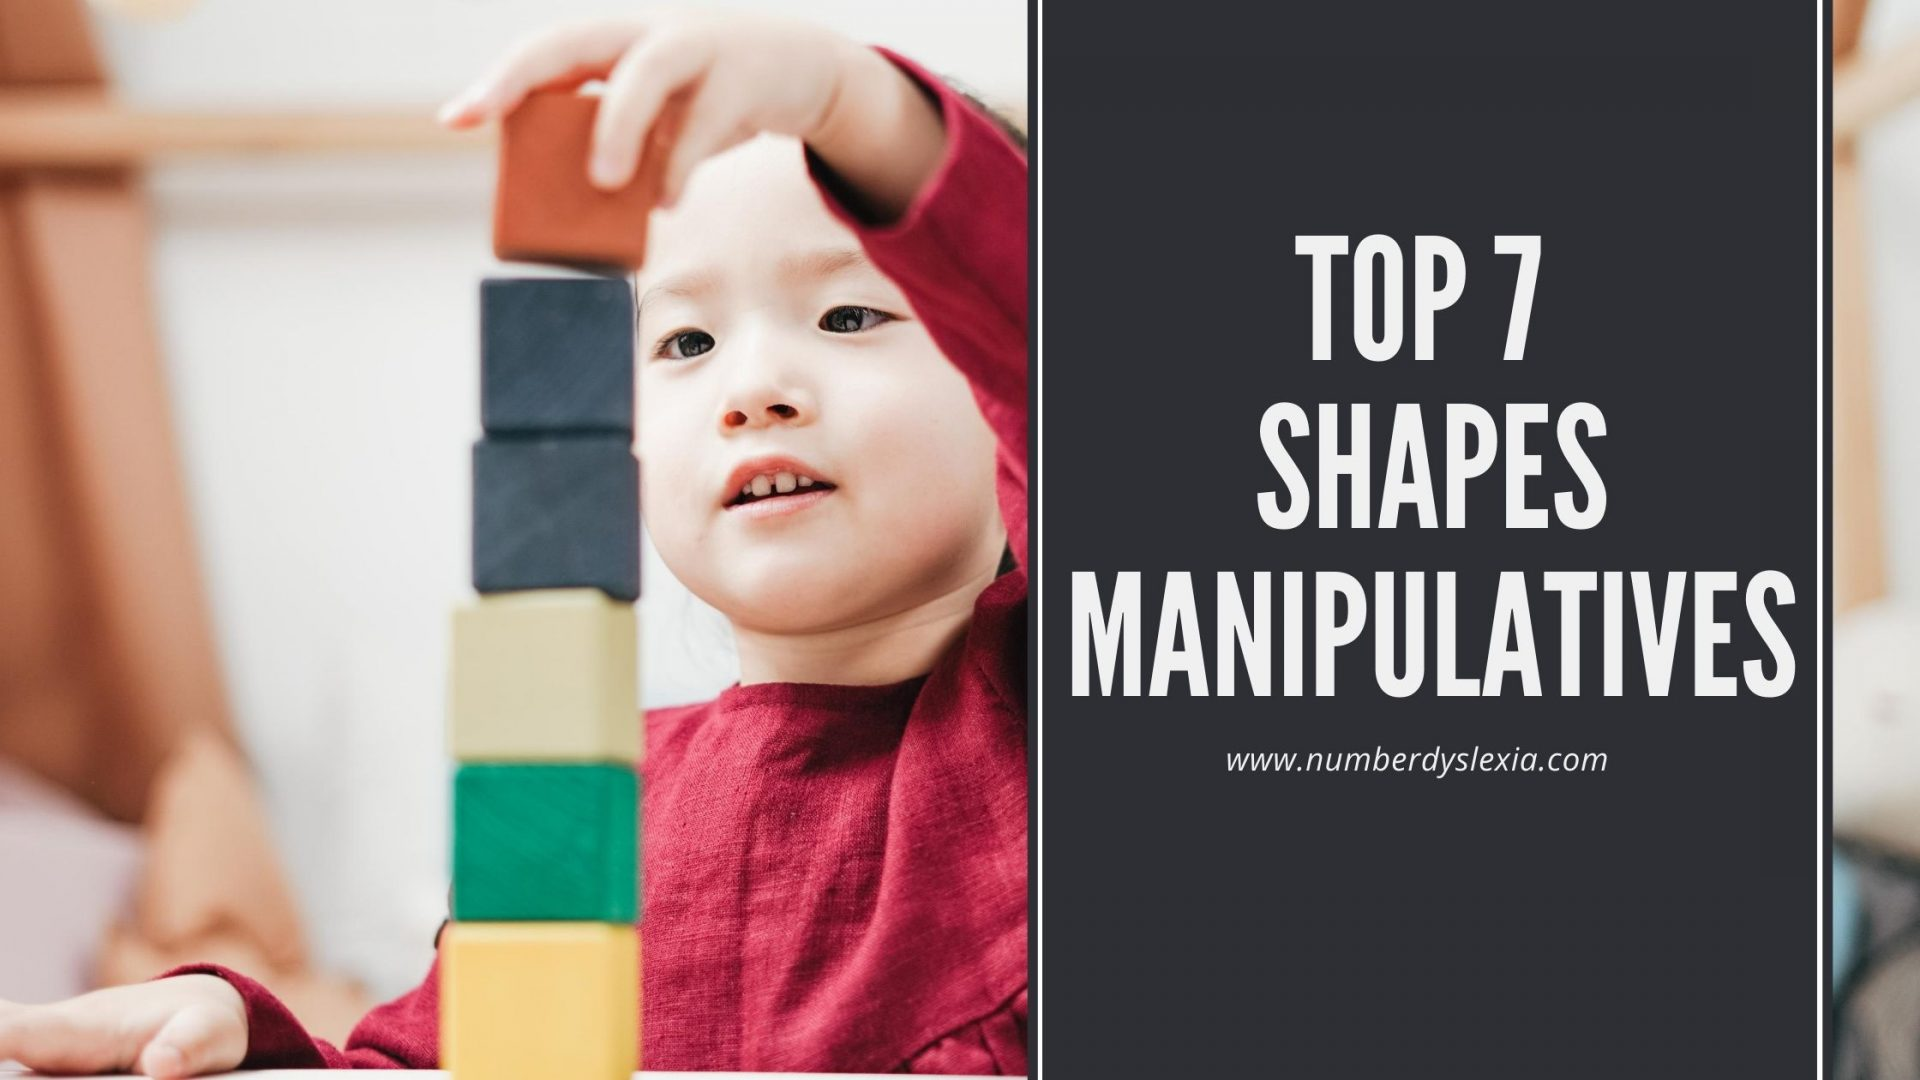 List of top 7 manipulatives for learning about shapes